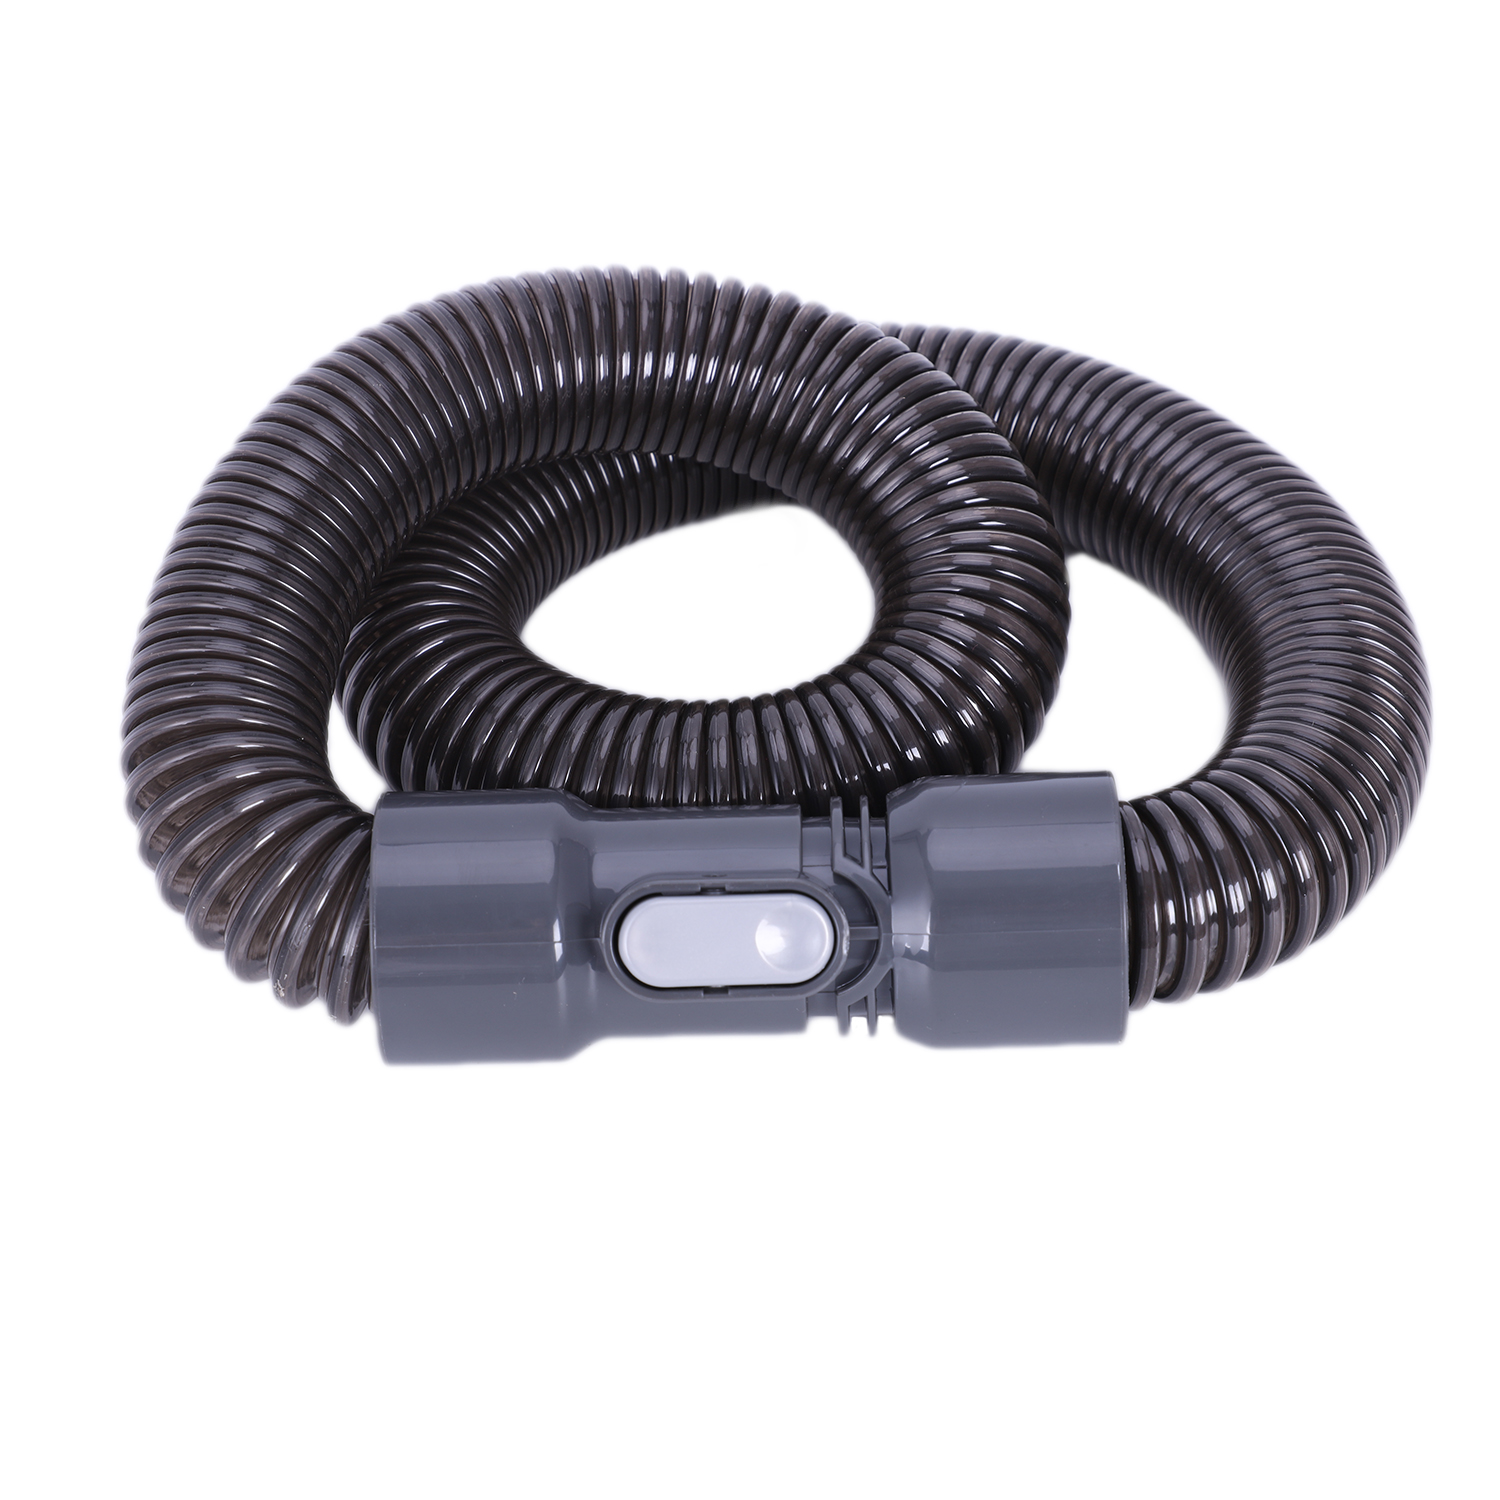 Extension tube hose for vacuum cleaner parts for Dyson DC34 DC44 DC58 DC59 DC62 DC74 V6Extension tube hose for vacuum cleaner parts for Dyson DC34 DC44 DC58 DC59 DC62 DC74 V6